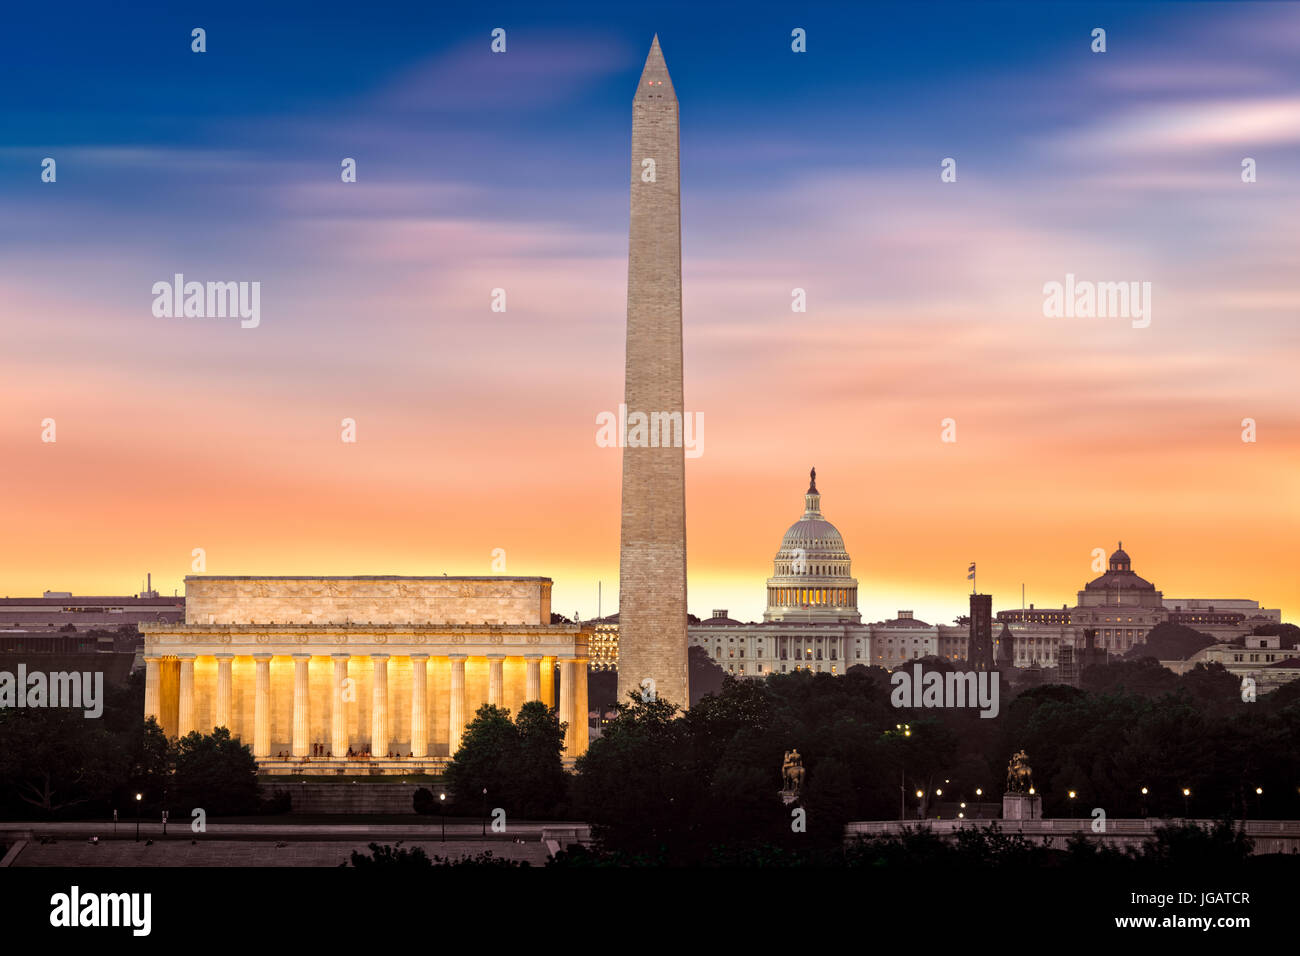 New Dawn Over Washington - avec 3 monuments emblématiques allumé au lever du soleil : le Lincoln Photo Stock